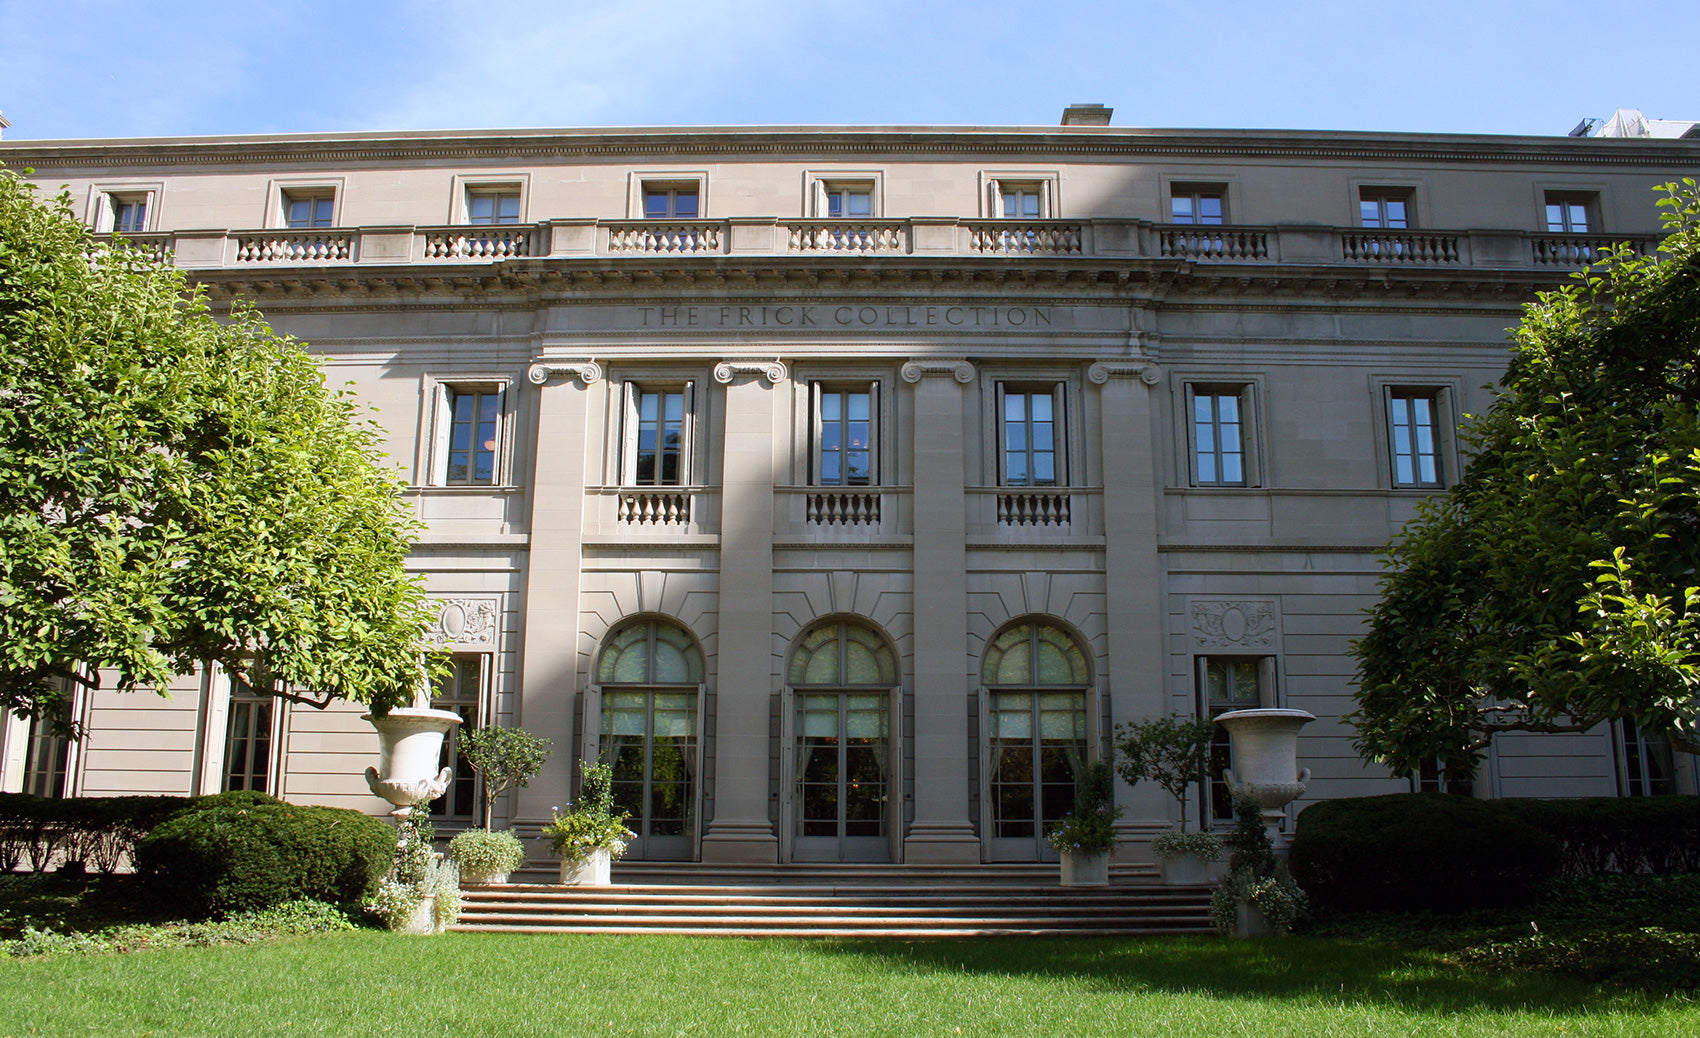 Frick Collection building exterior